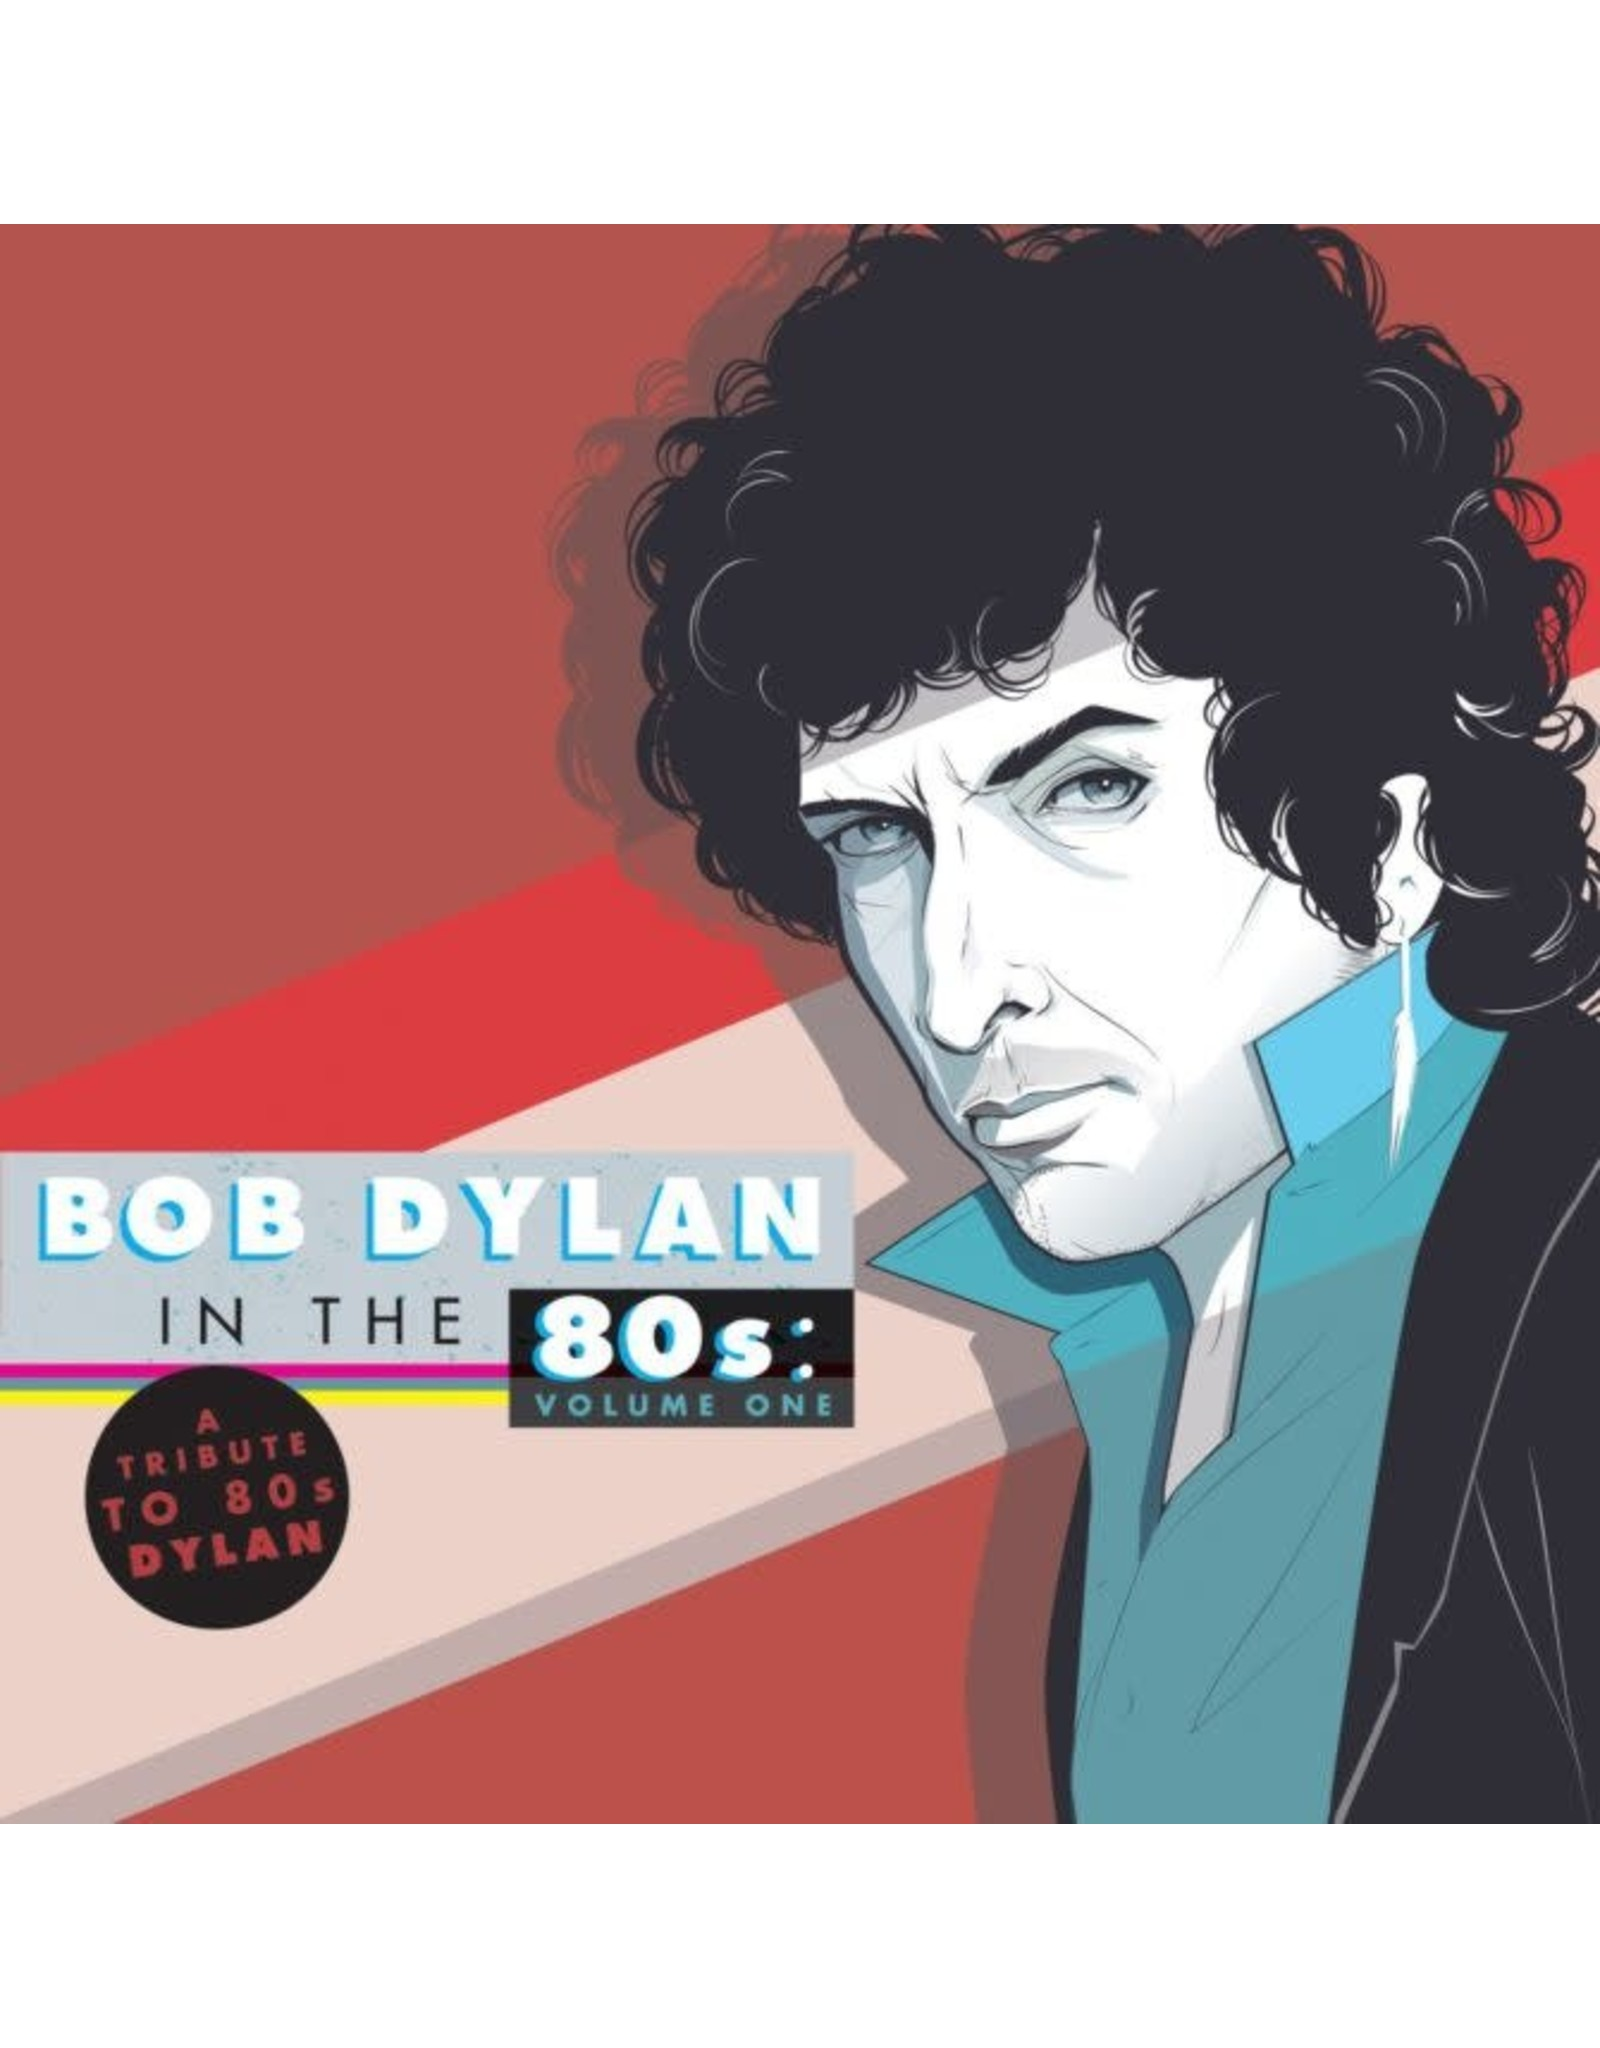 V/A - Bob Dylan In The 80's, Vol. One LP